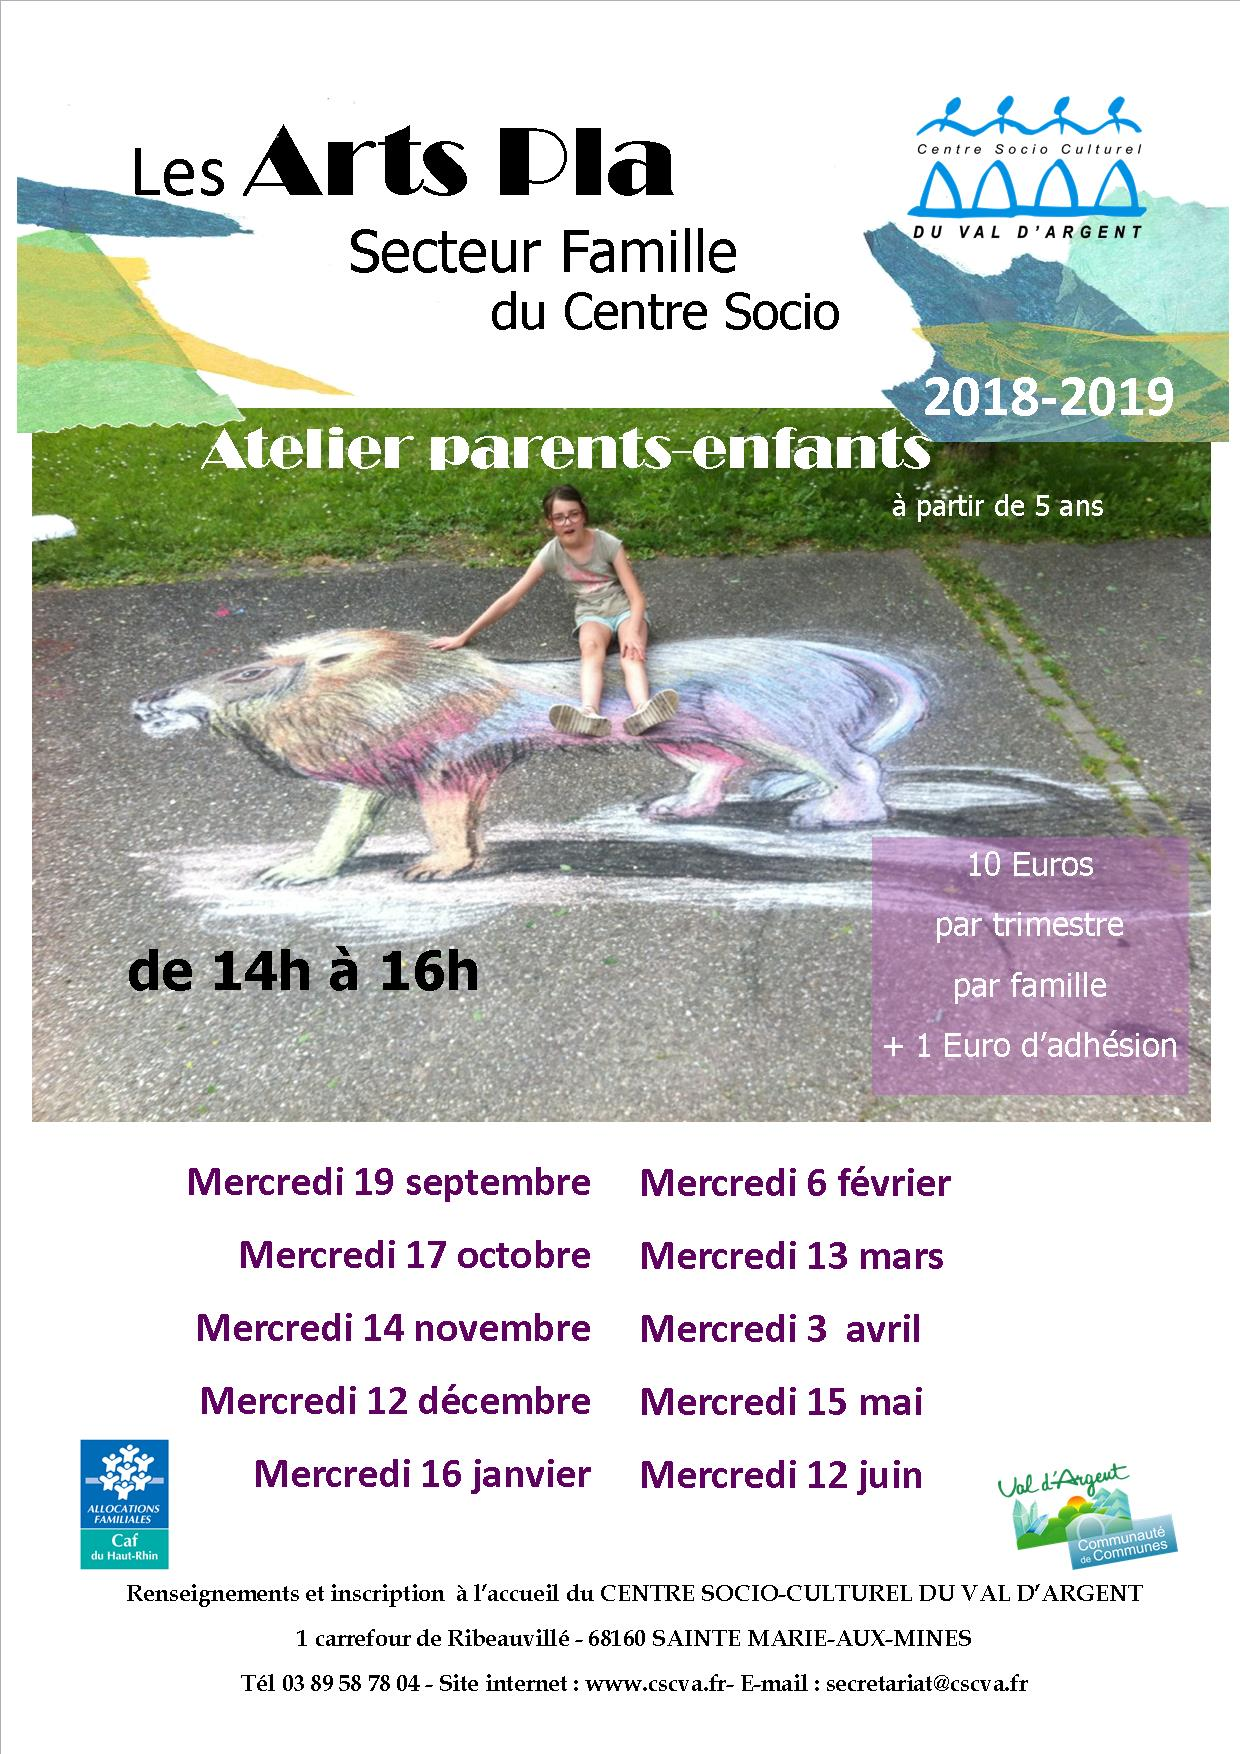 fly arts pla famille 2018 19